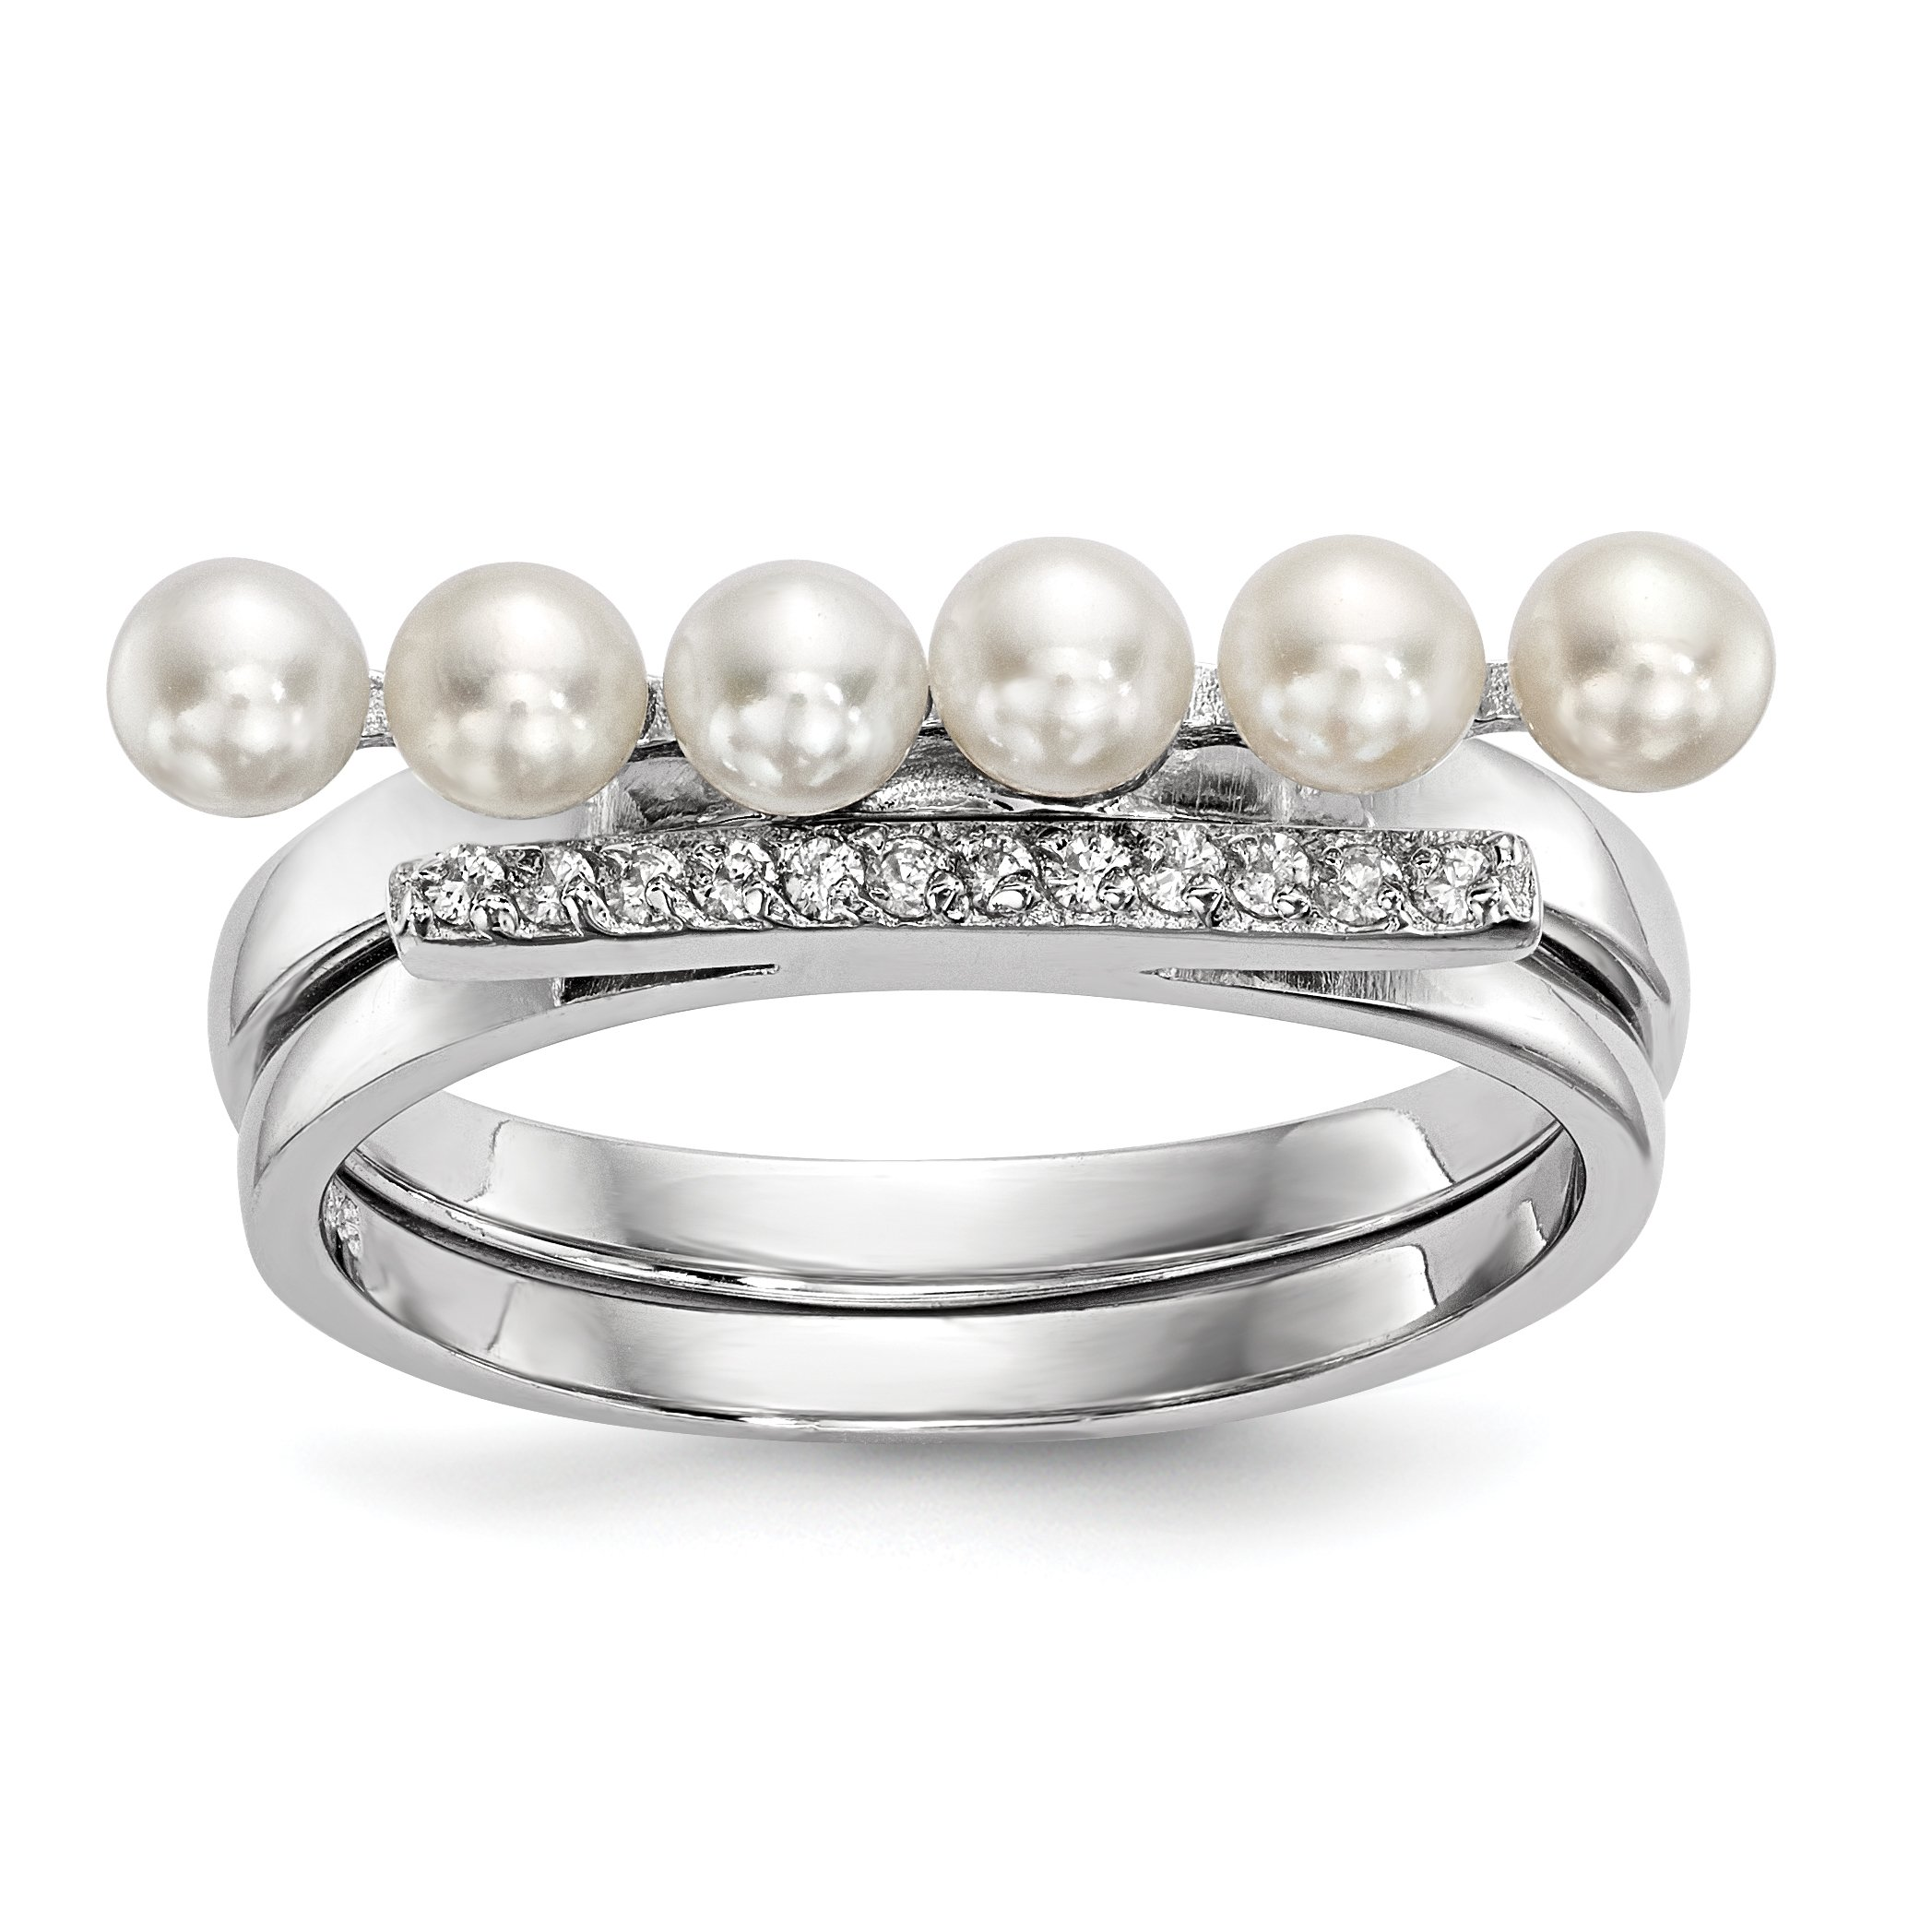 ICE CARATS 925 Sterling Silver 4mm White Freshwater Cultured Pearl Cubic Zirconia Cz Duo Band Ring Size 8.00 Fine Jewelry Gift Set For Women Heart